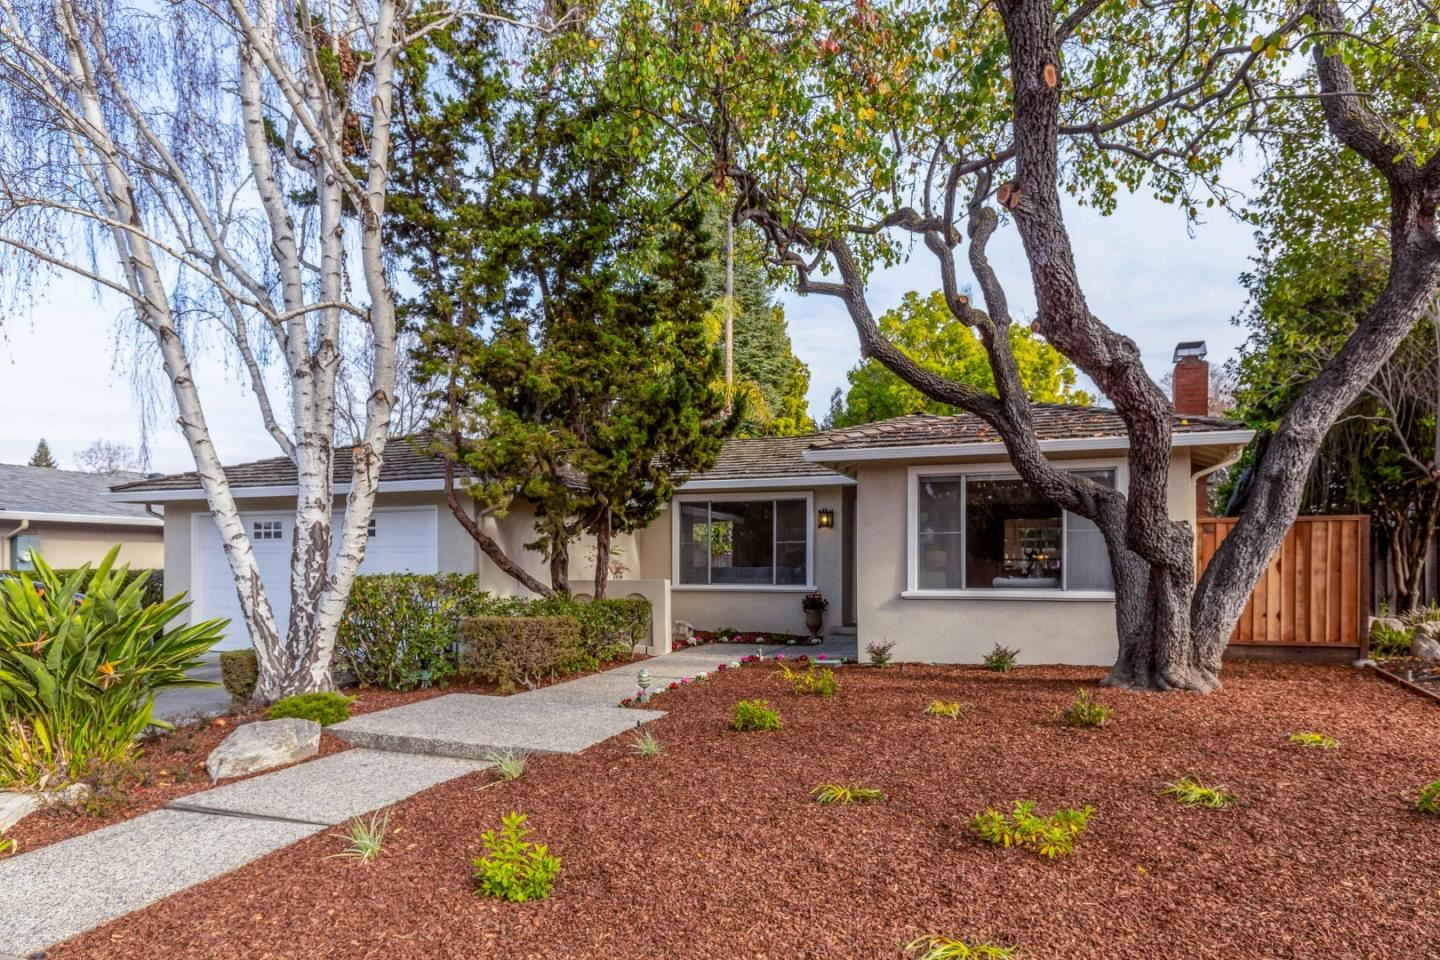 Photo for 424 Palmetto DR, SUNNYVALE, CA 94086 (MLS # ML81825608)